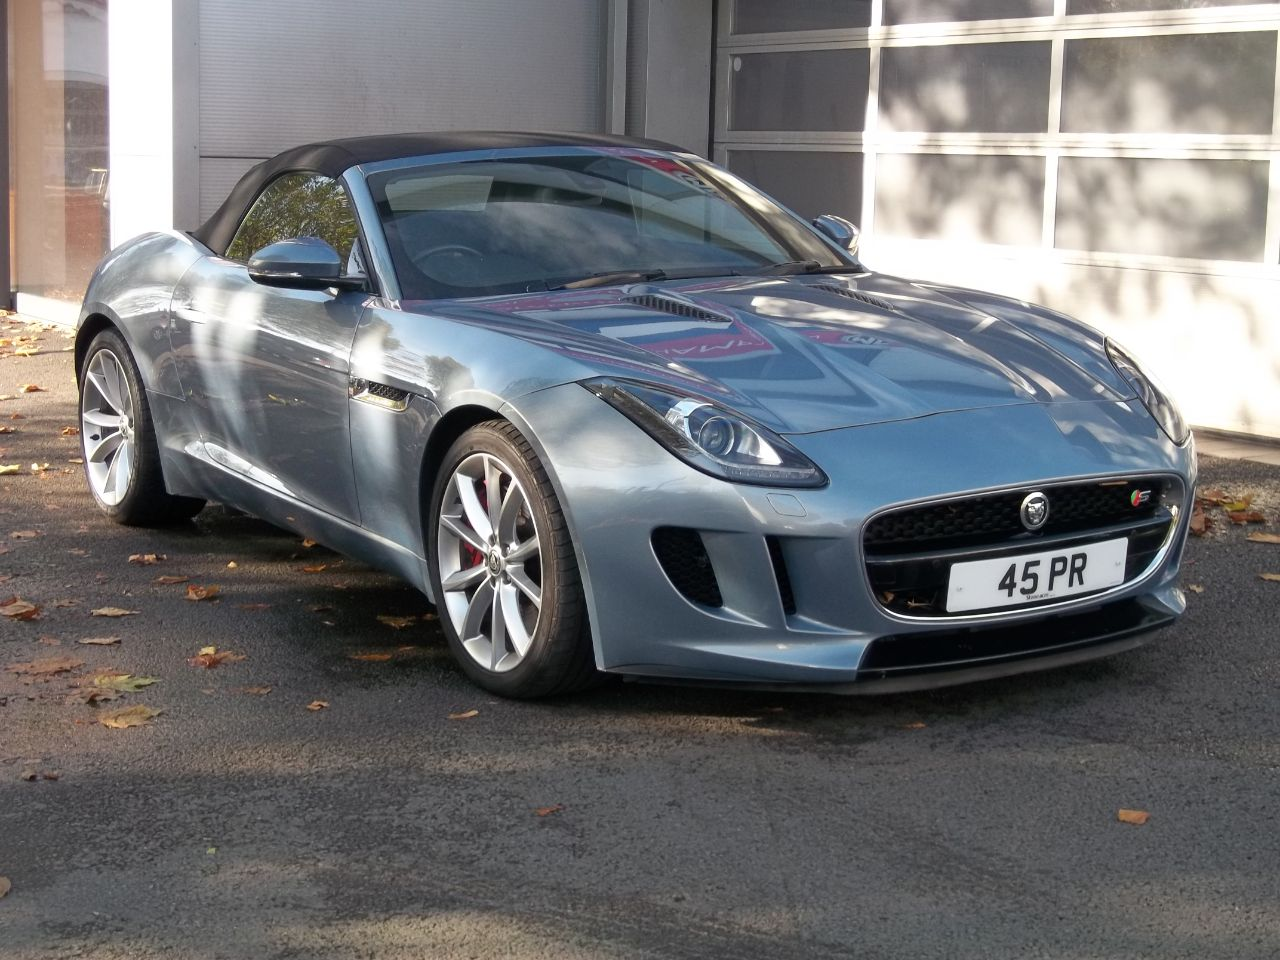 Jaguar F-type 3.0 Supercharged V6 S 2dr Auto Convertible Petrol Grey at Bunning Garages Wolverhampton